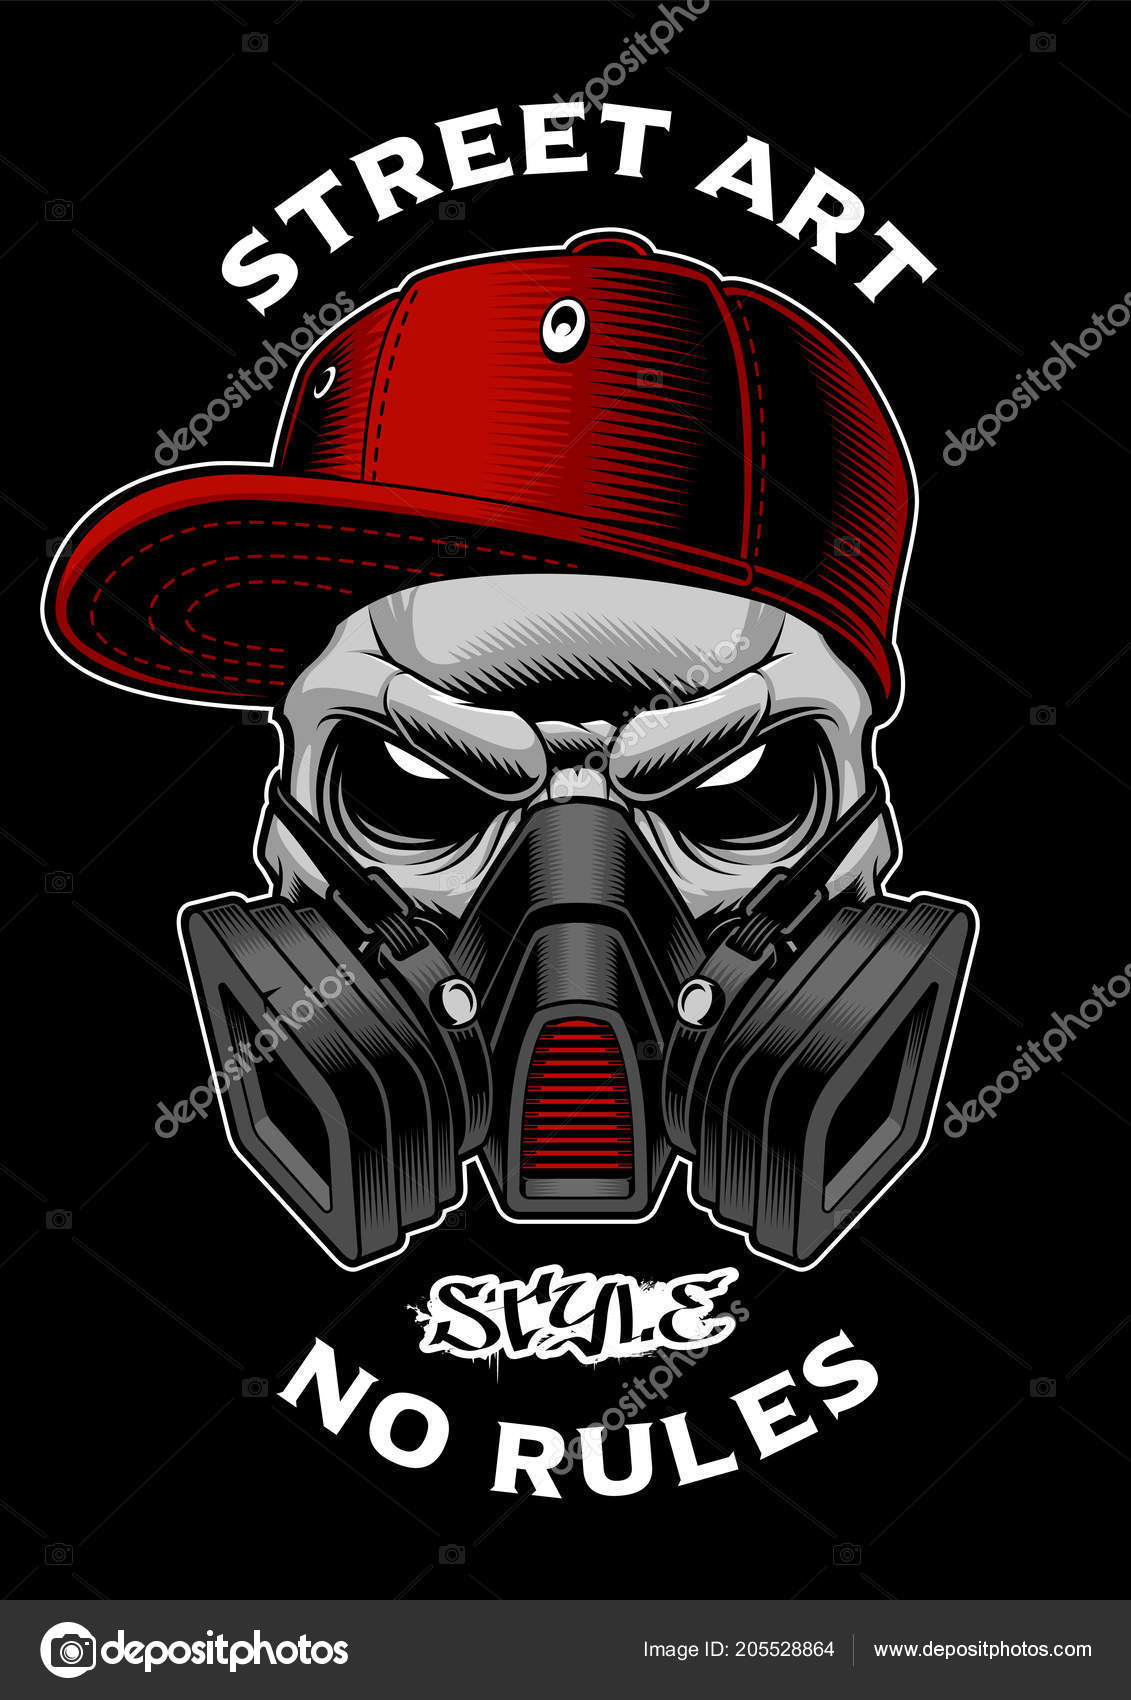 Drawings Graffiti Characters Gas Mask Graffiti Skull With